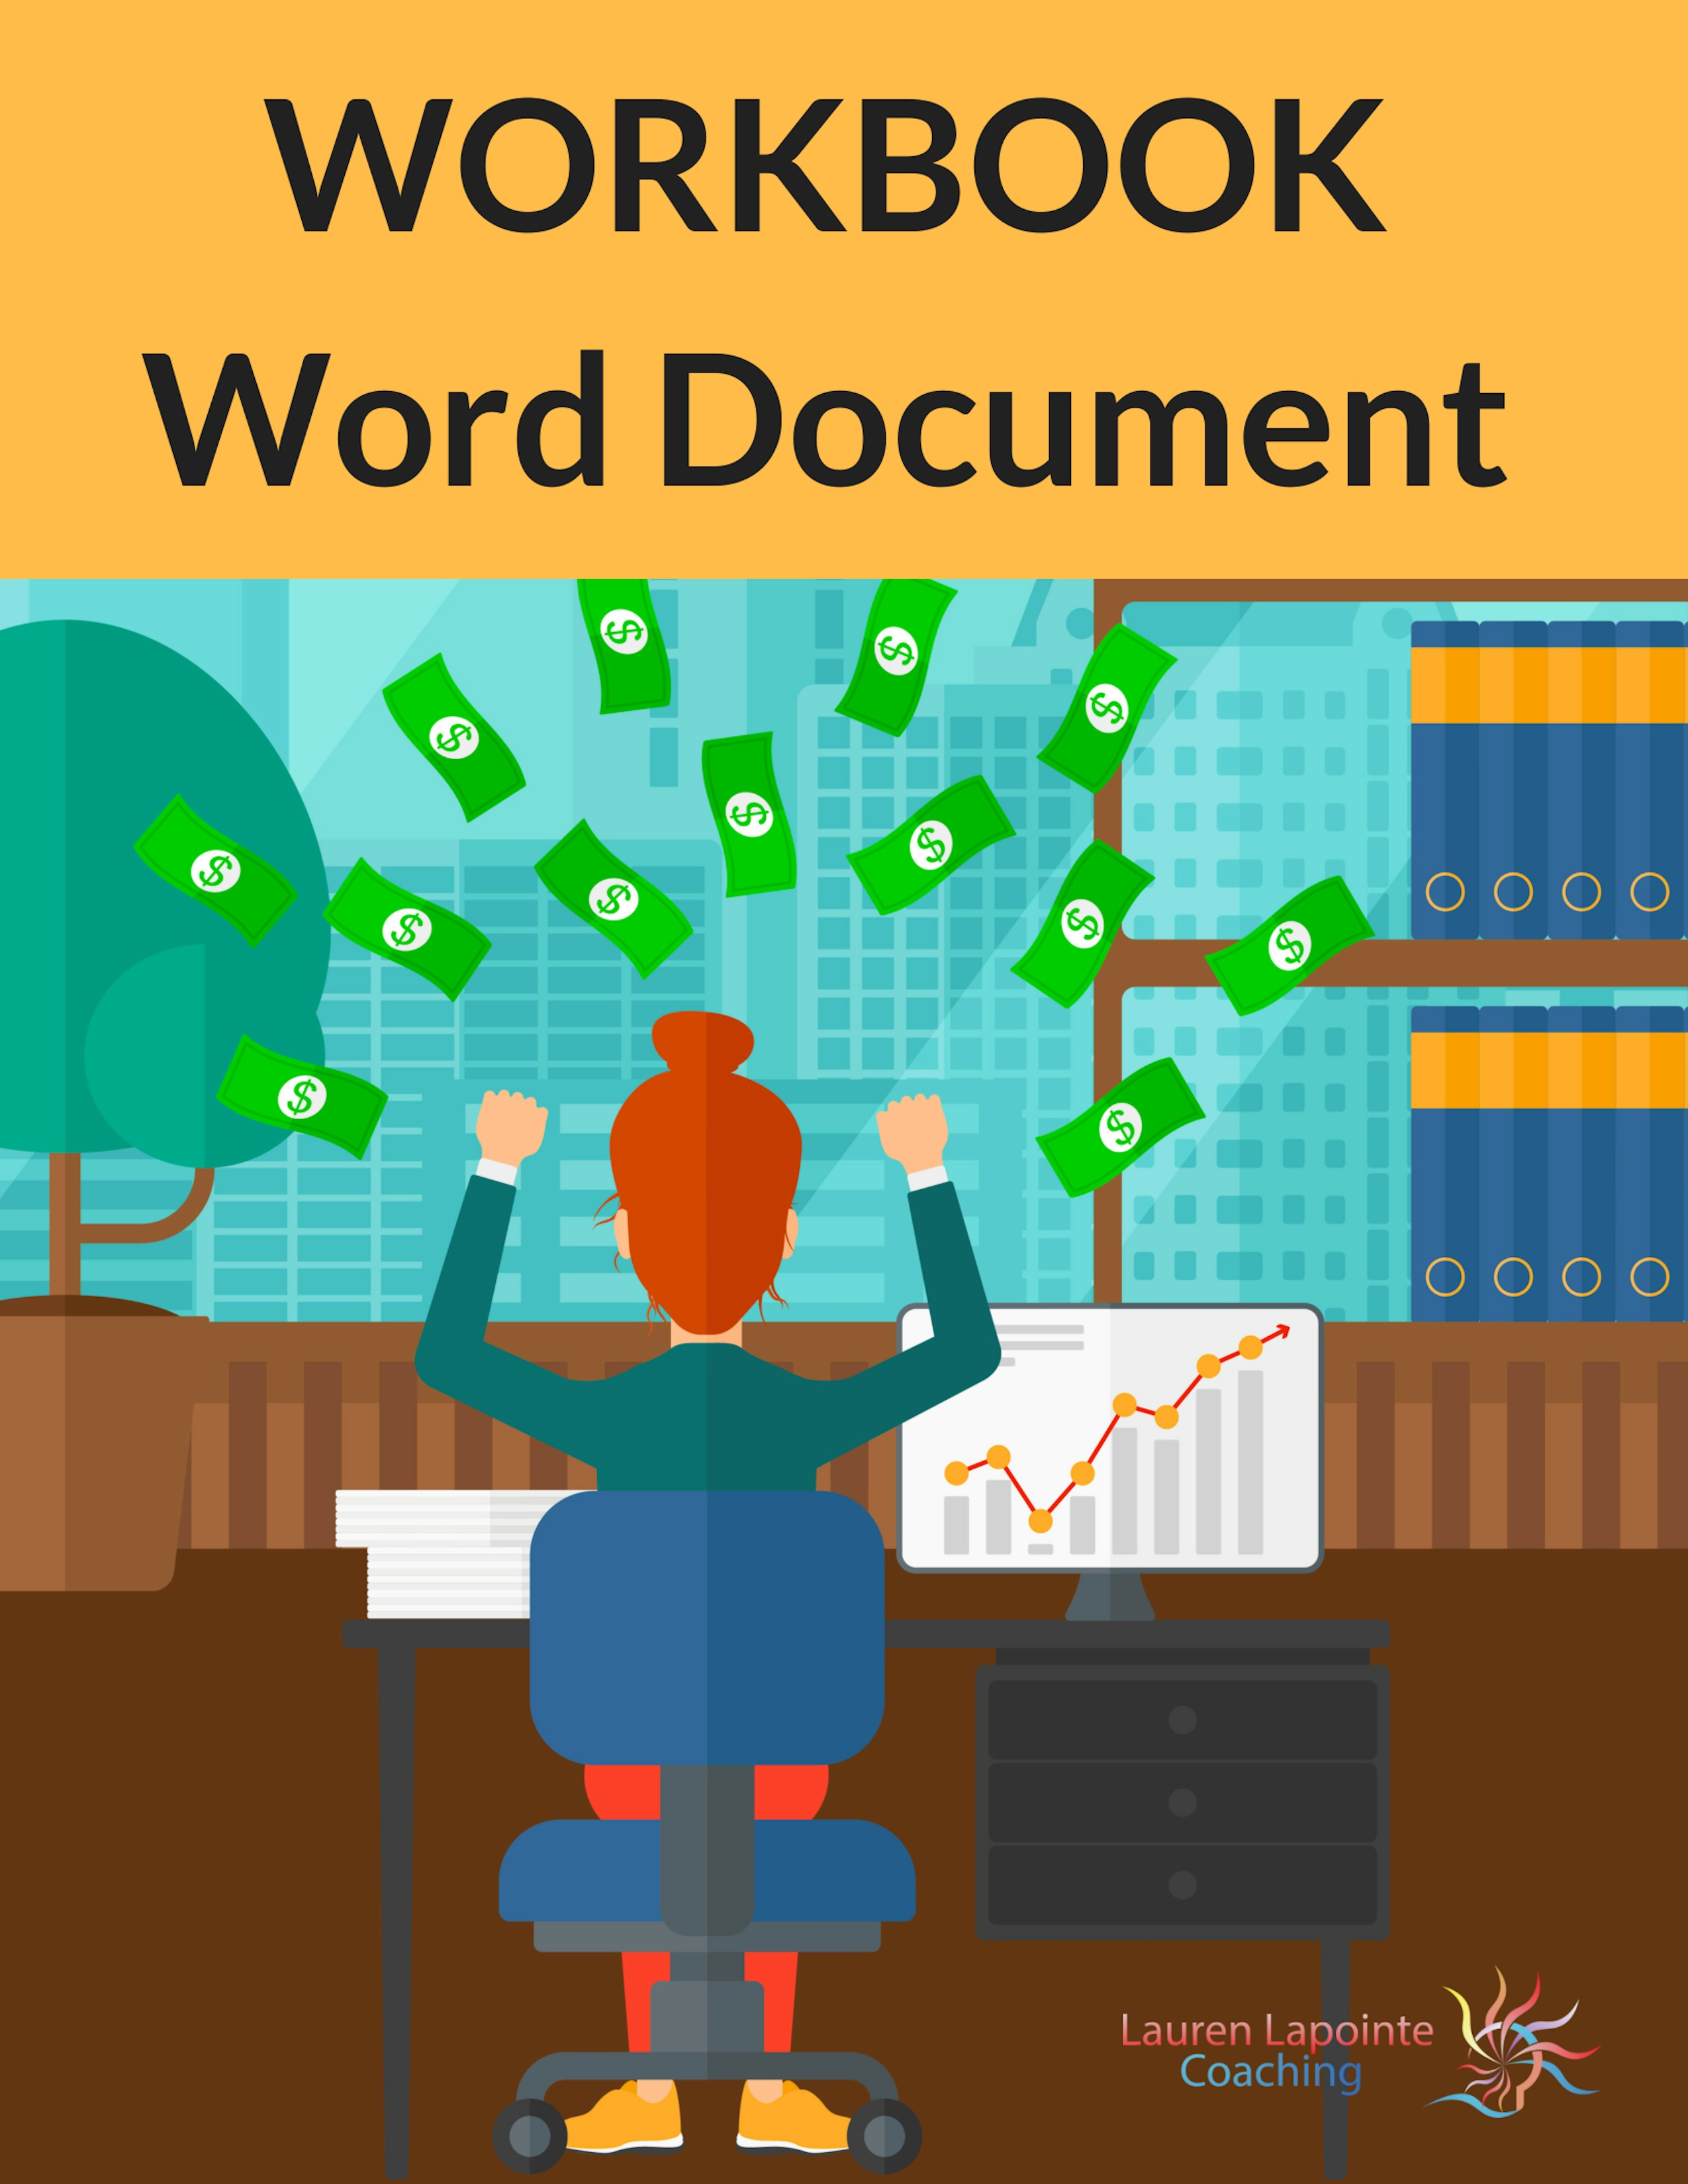 Workbook-cover-word